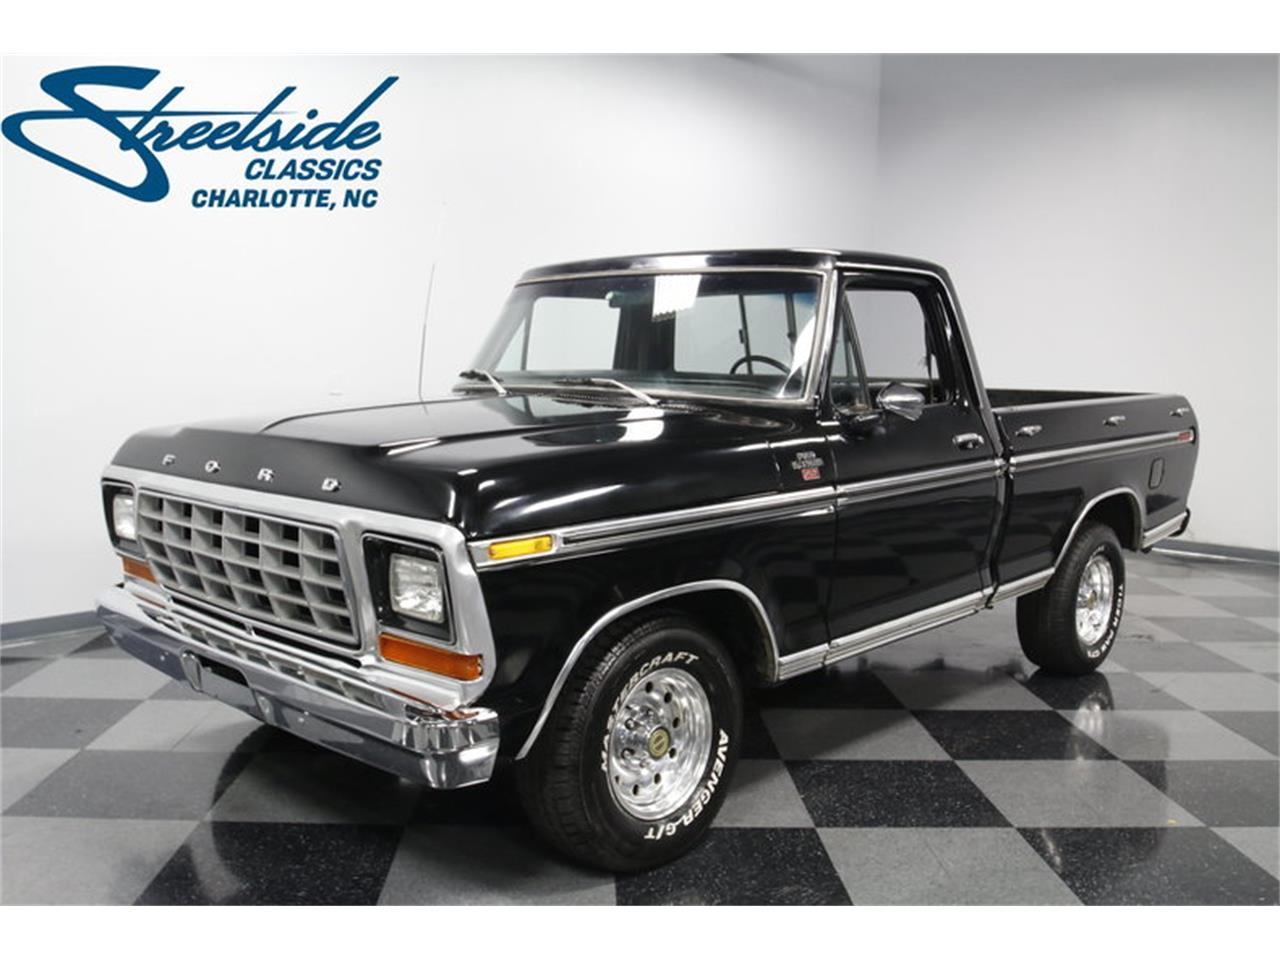 Large picture of 79 f100 n12m